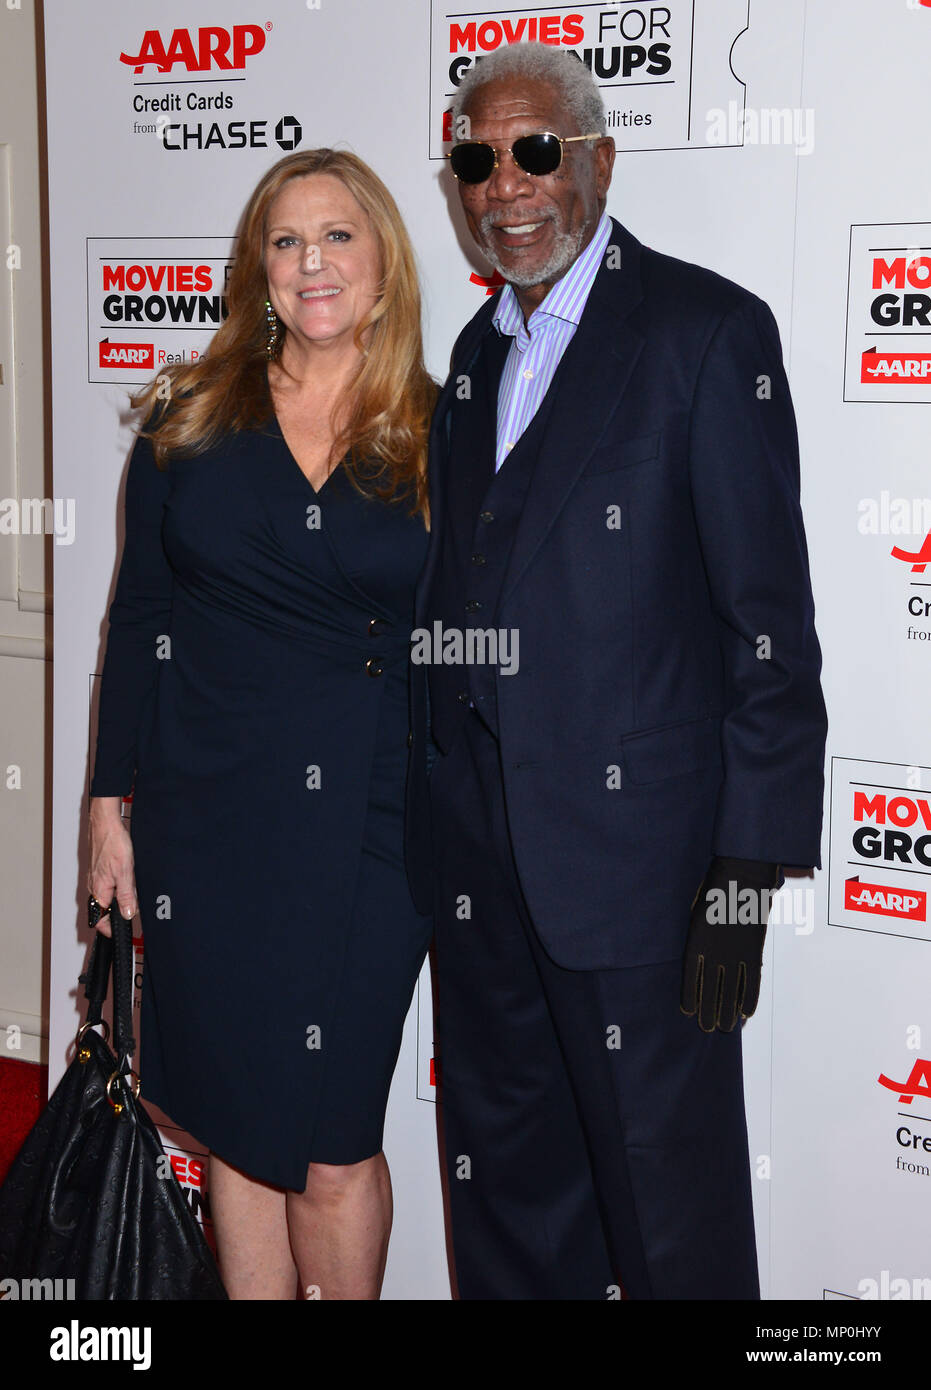 Morgan Freeman, Lori McCreary at the Movies For Grow Ups - AARP - at the Beverly Wilshire Hotel in Los Angeles. February 8, 2016.Morgan Freeman, Lori McCreary ------------- Red Carpet Event, Vertical, USA, Film Industry, Celebrities,  Photography, Bestof, Arts Culture and Entertainment, Topix Celebrities fashion /  Vertical, Best of, Event in Hollywood Life - California,  Red Carpet and backstage, USA, Film Industry, Celebrities,  movie celebrities, TV celebrities, Music celebrities, Photography, Bestof, Arts Culture and Entertainment,  Topix, vertical,  family from from the year , 2016, inqui - Stock Image